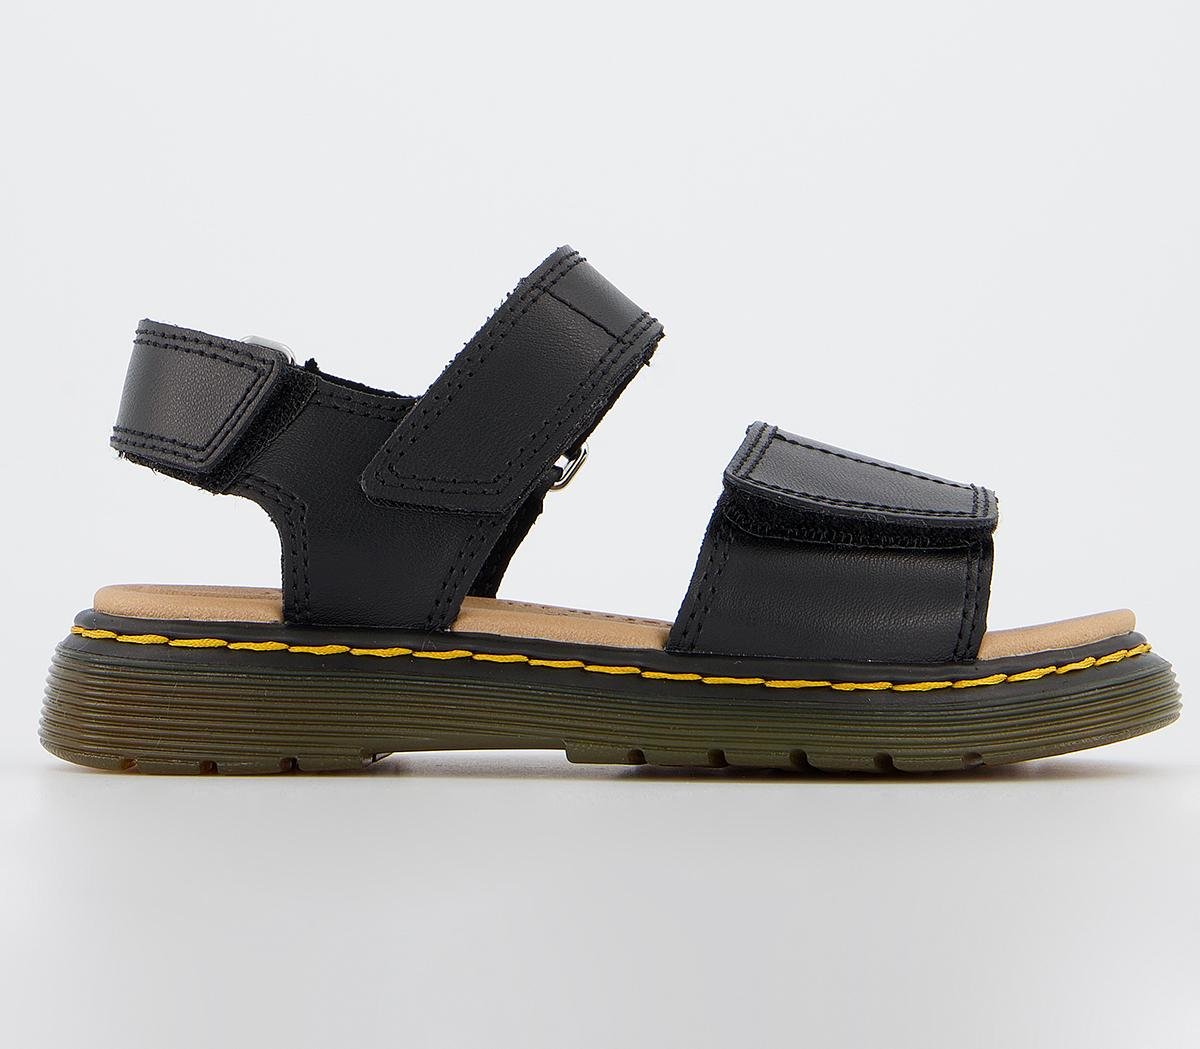 Romi Sandals Youth